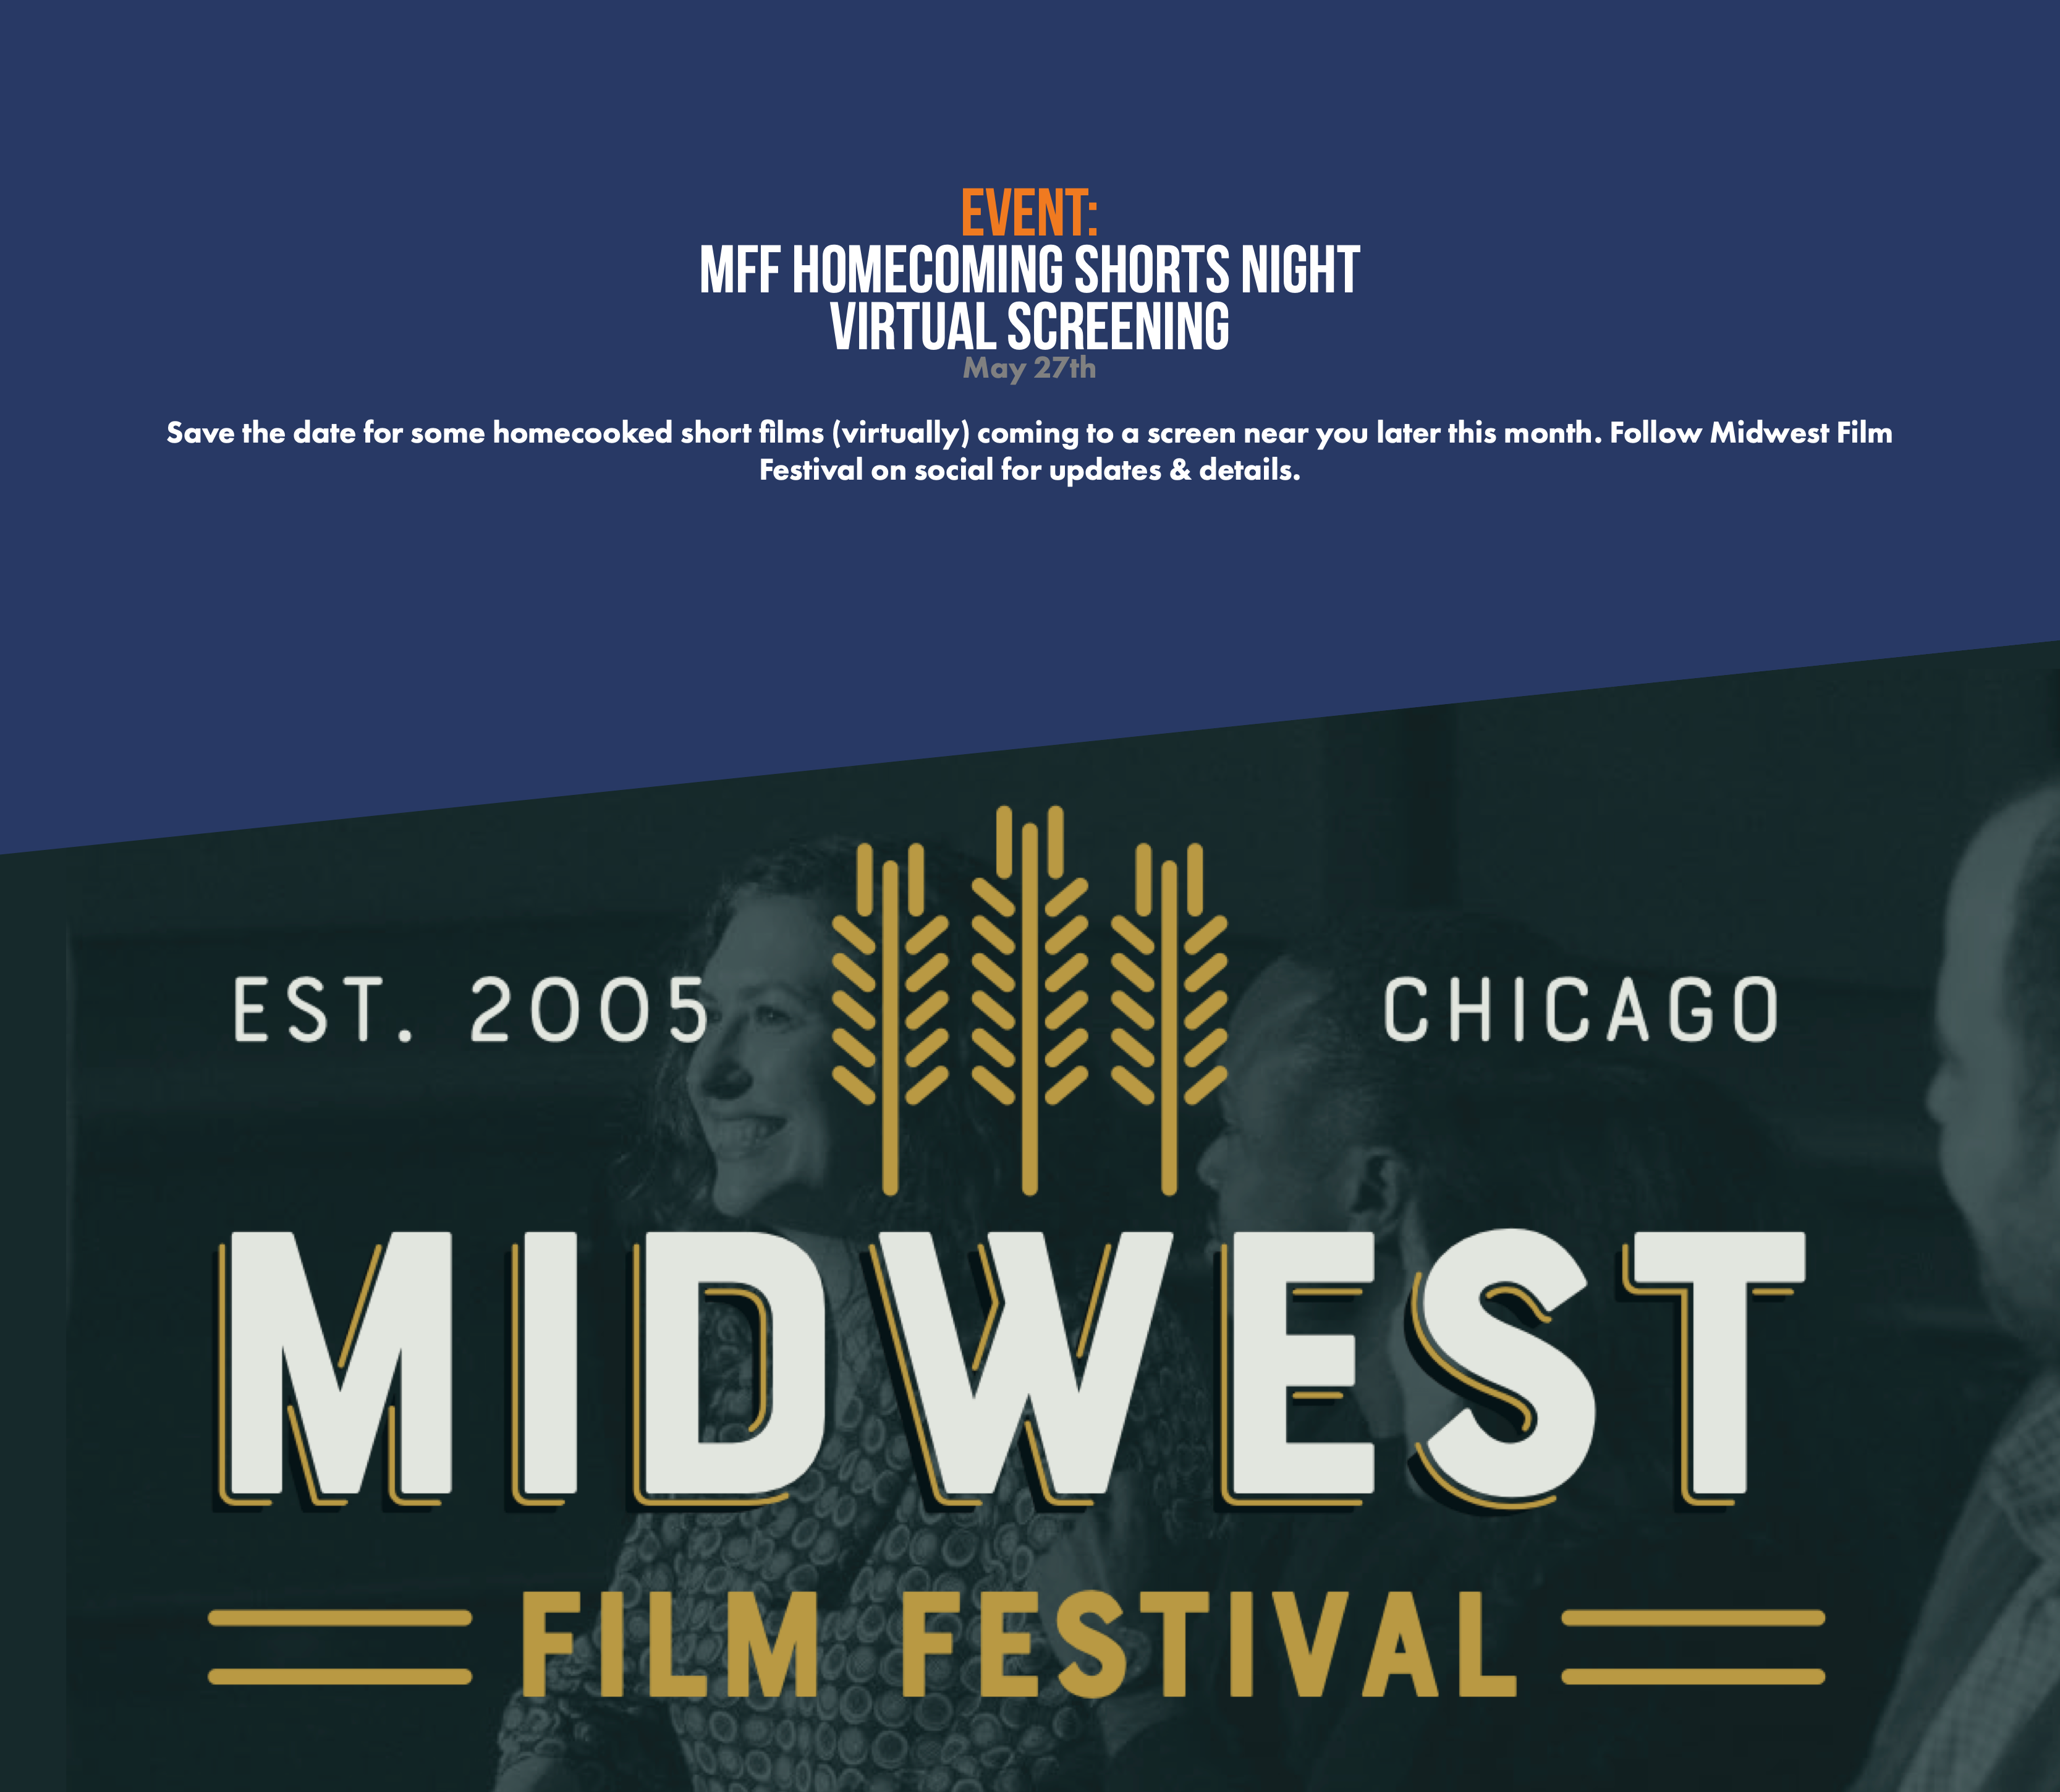 Event: MFF Homecoming Shorts Night Virtual Screening  May 27th  Save the date for some homecooked short films (virtually) coming to a screen near you later this month. Follow Midwest Film Festival on social for updates & details.